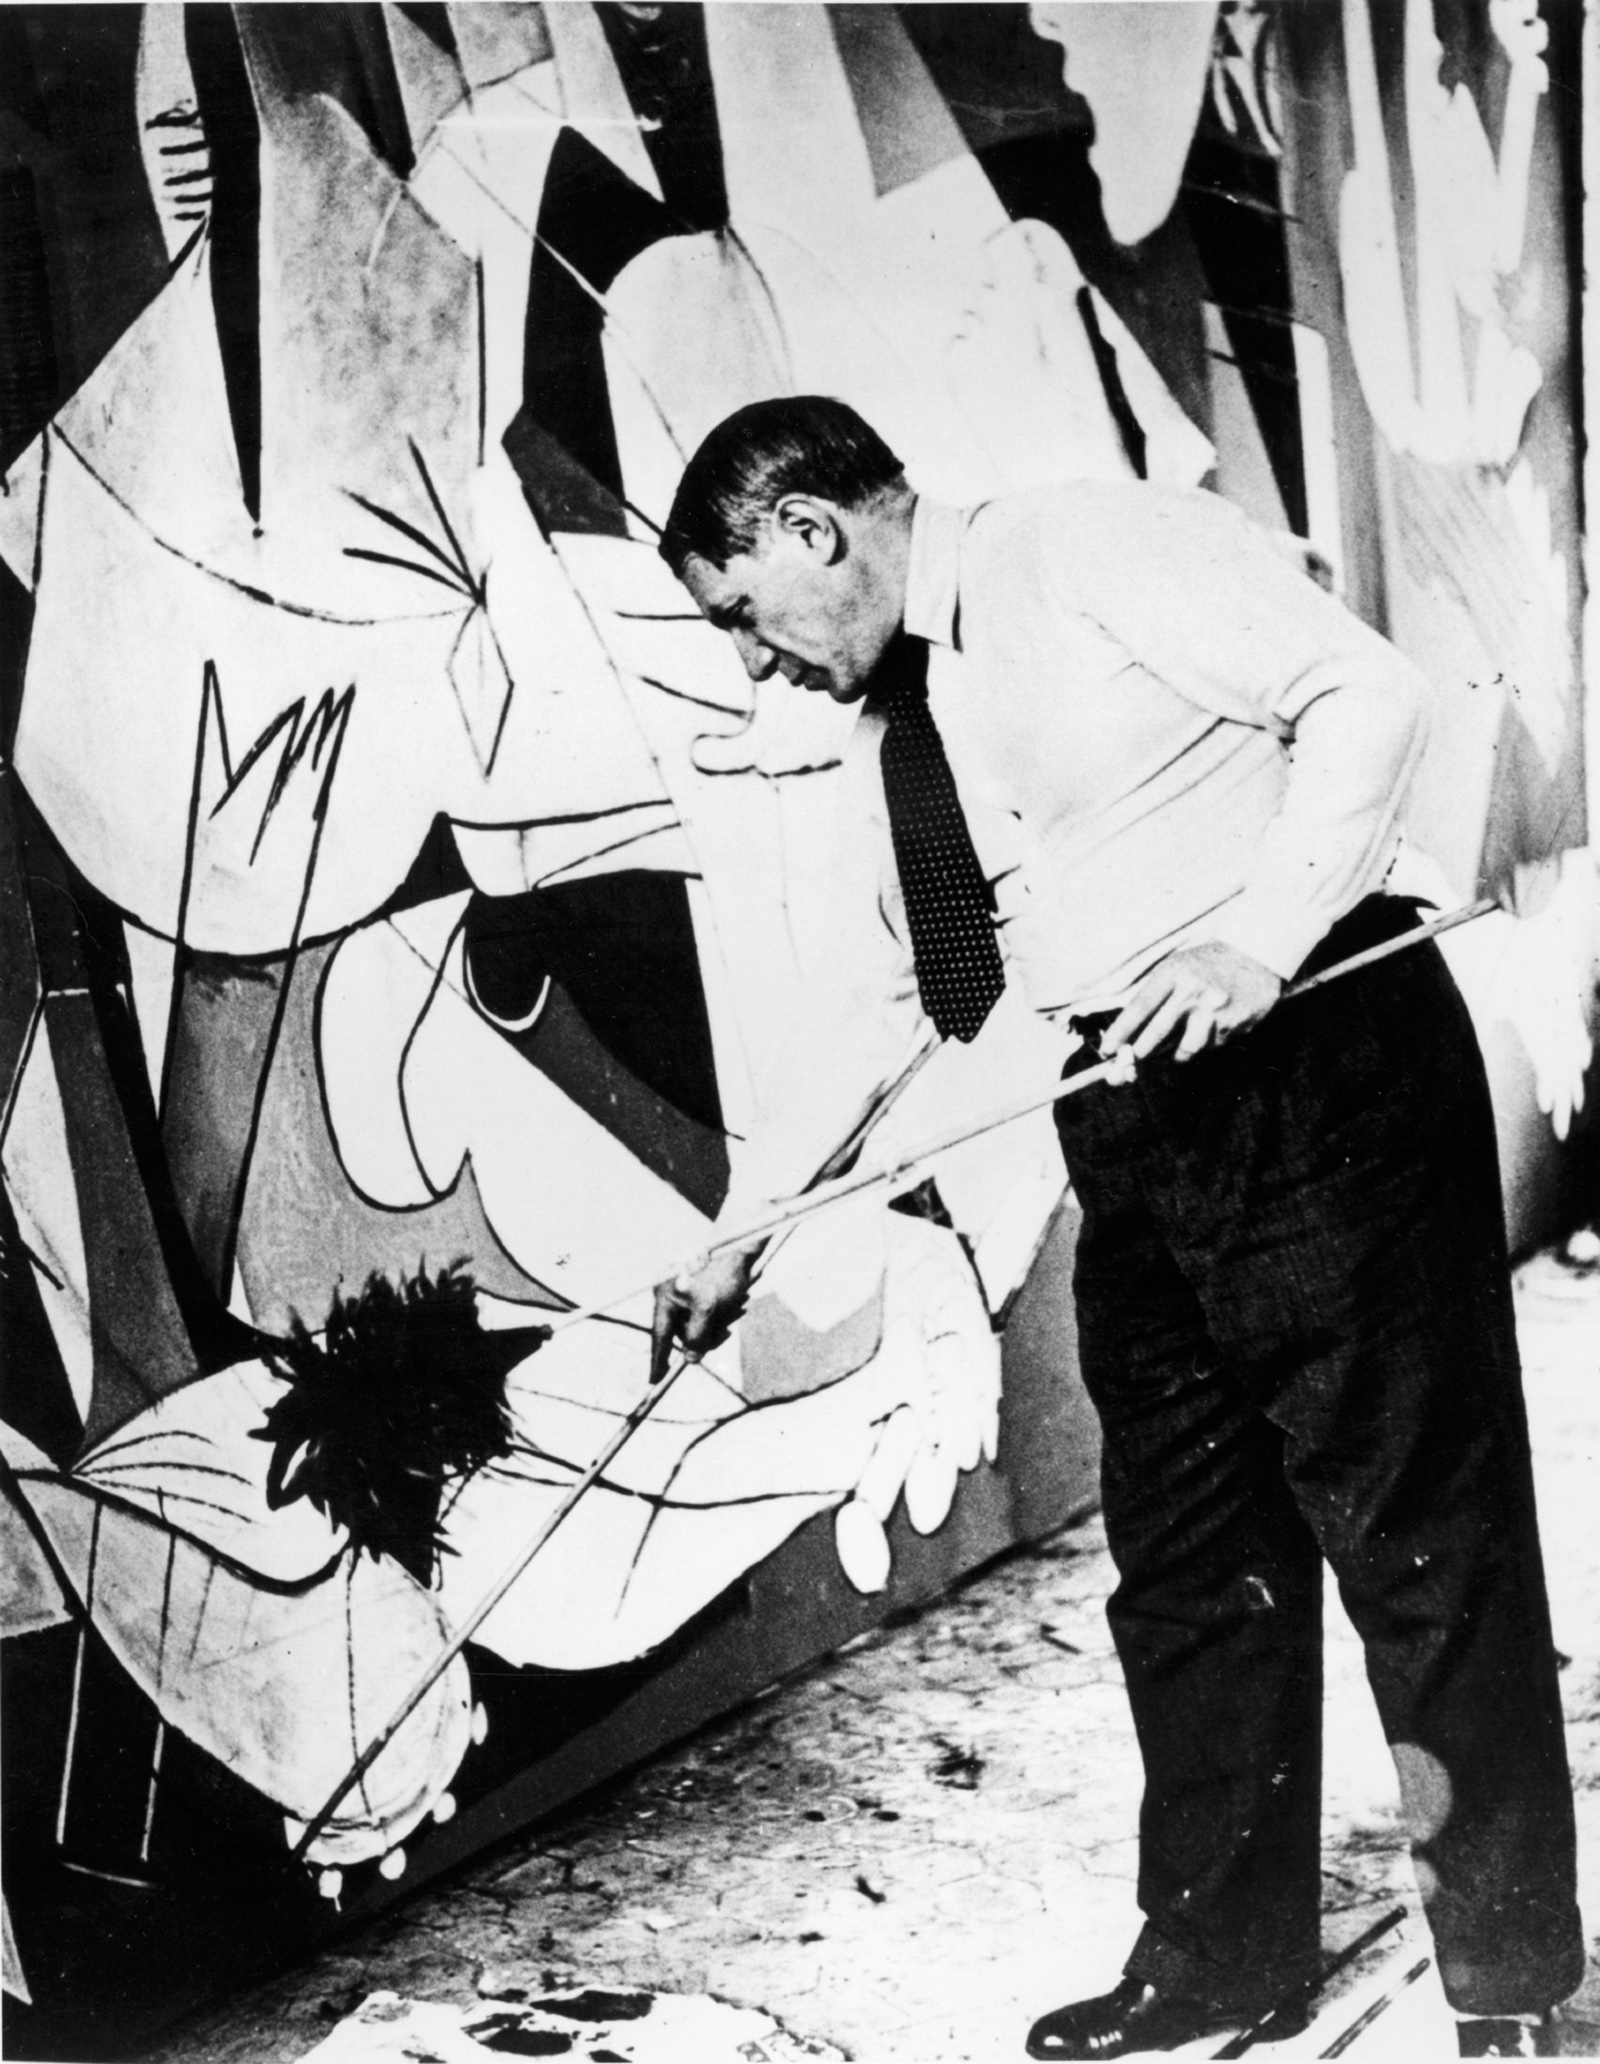 Pablo Picasso painting Guernica in his studio, Paris, 1937; photograph by Dora Maar